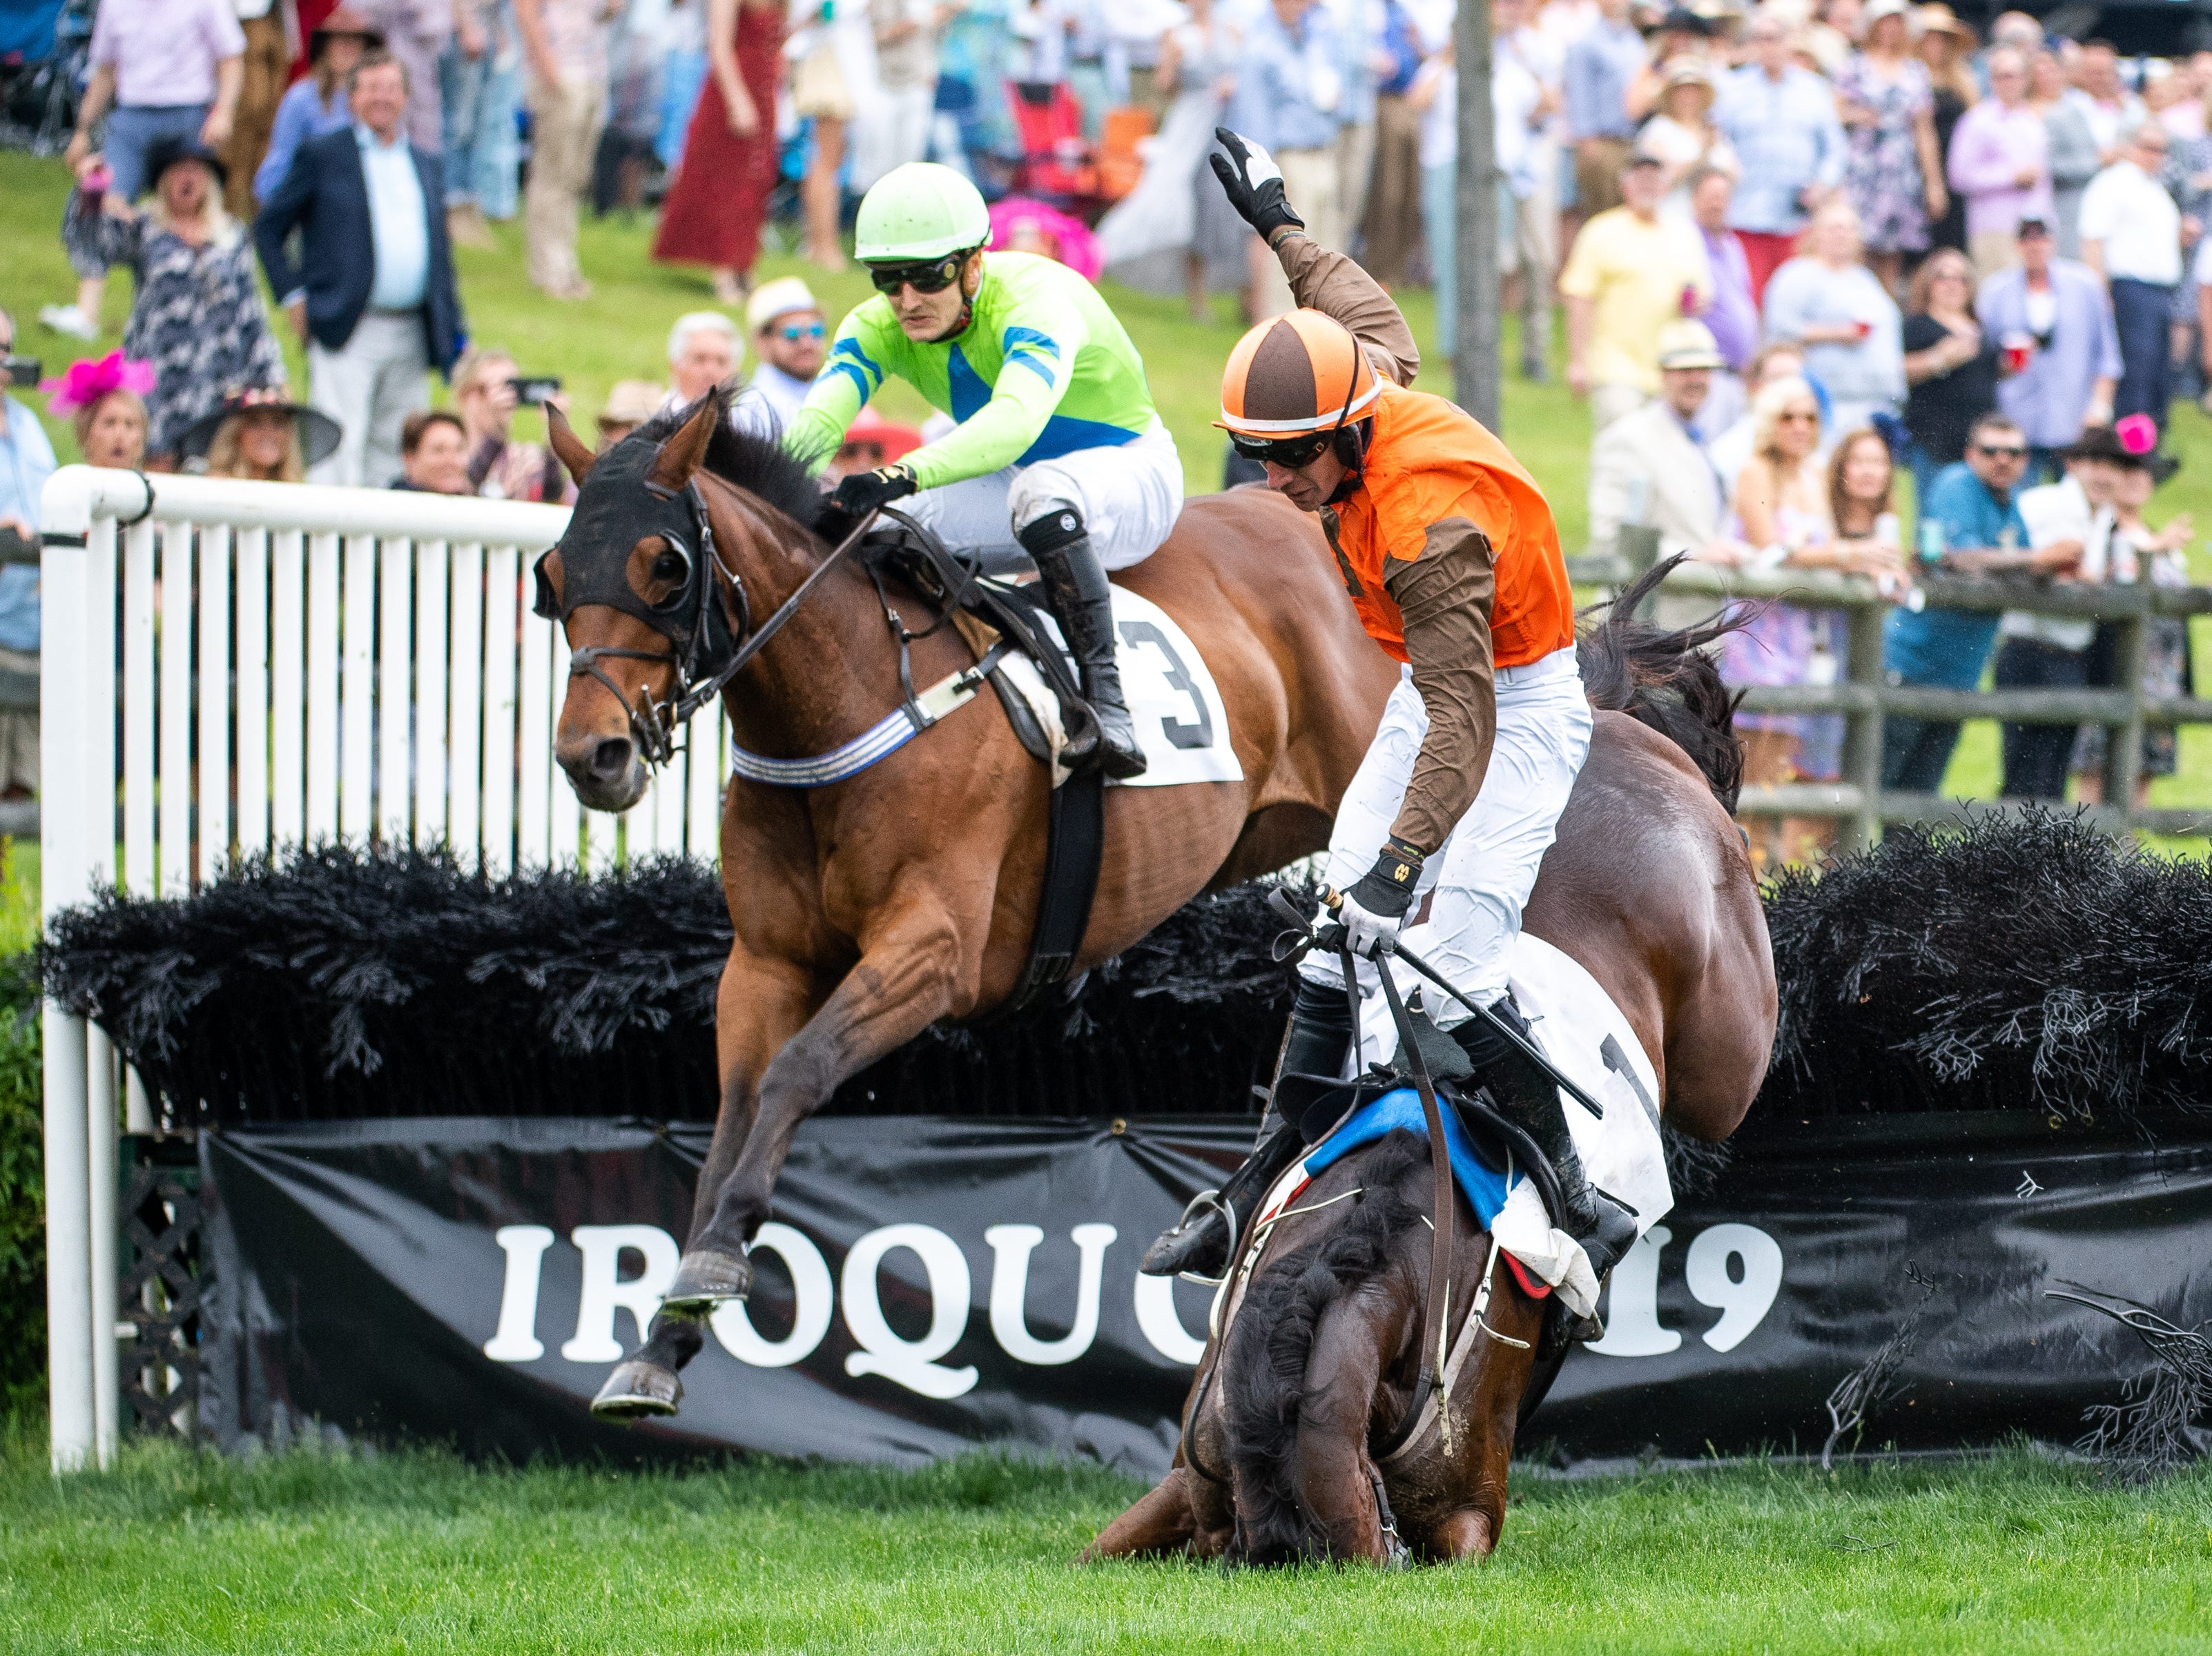 Thoroughbred horse, Cite, falls as Willie McCarthy becomes unseated and Whitman's Poetry carries Michale Mitchell over the last jump of the first race of the Iroquois Steeplechase at Percy Warner Park Saturday, May 11, 2019, in Nashville, Tenn.